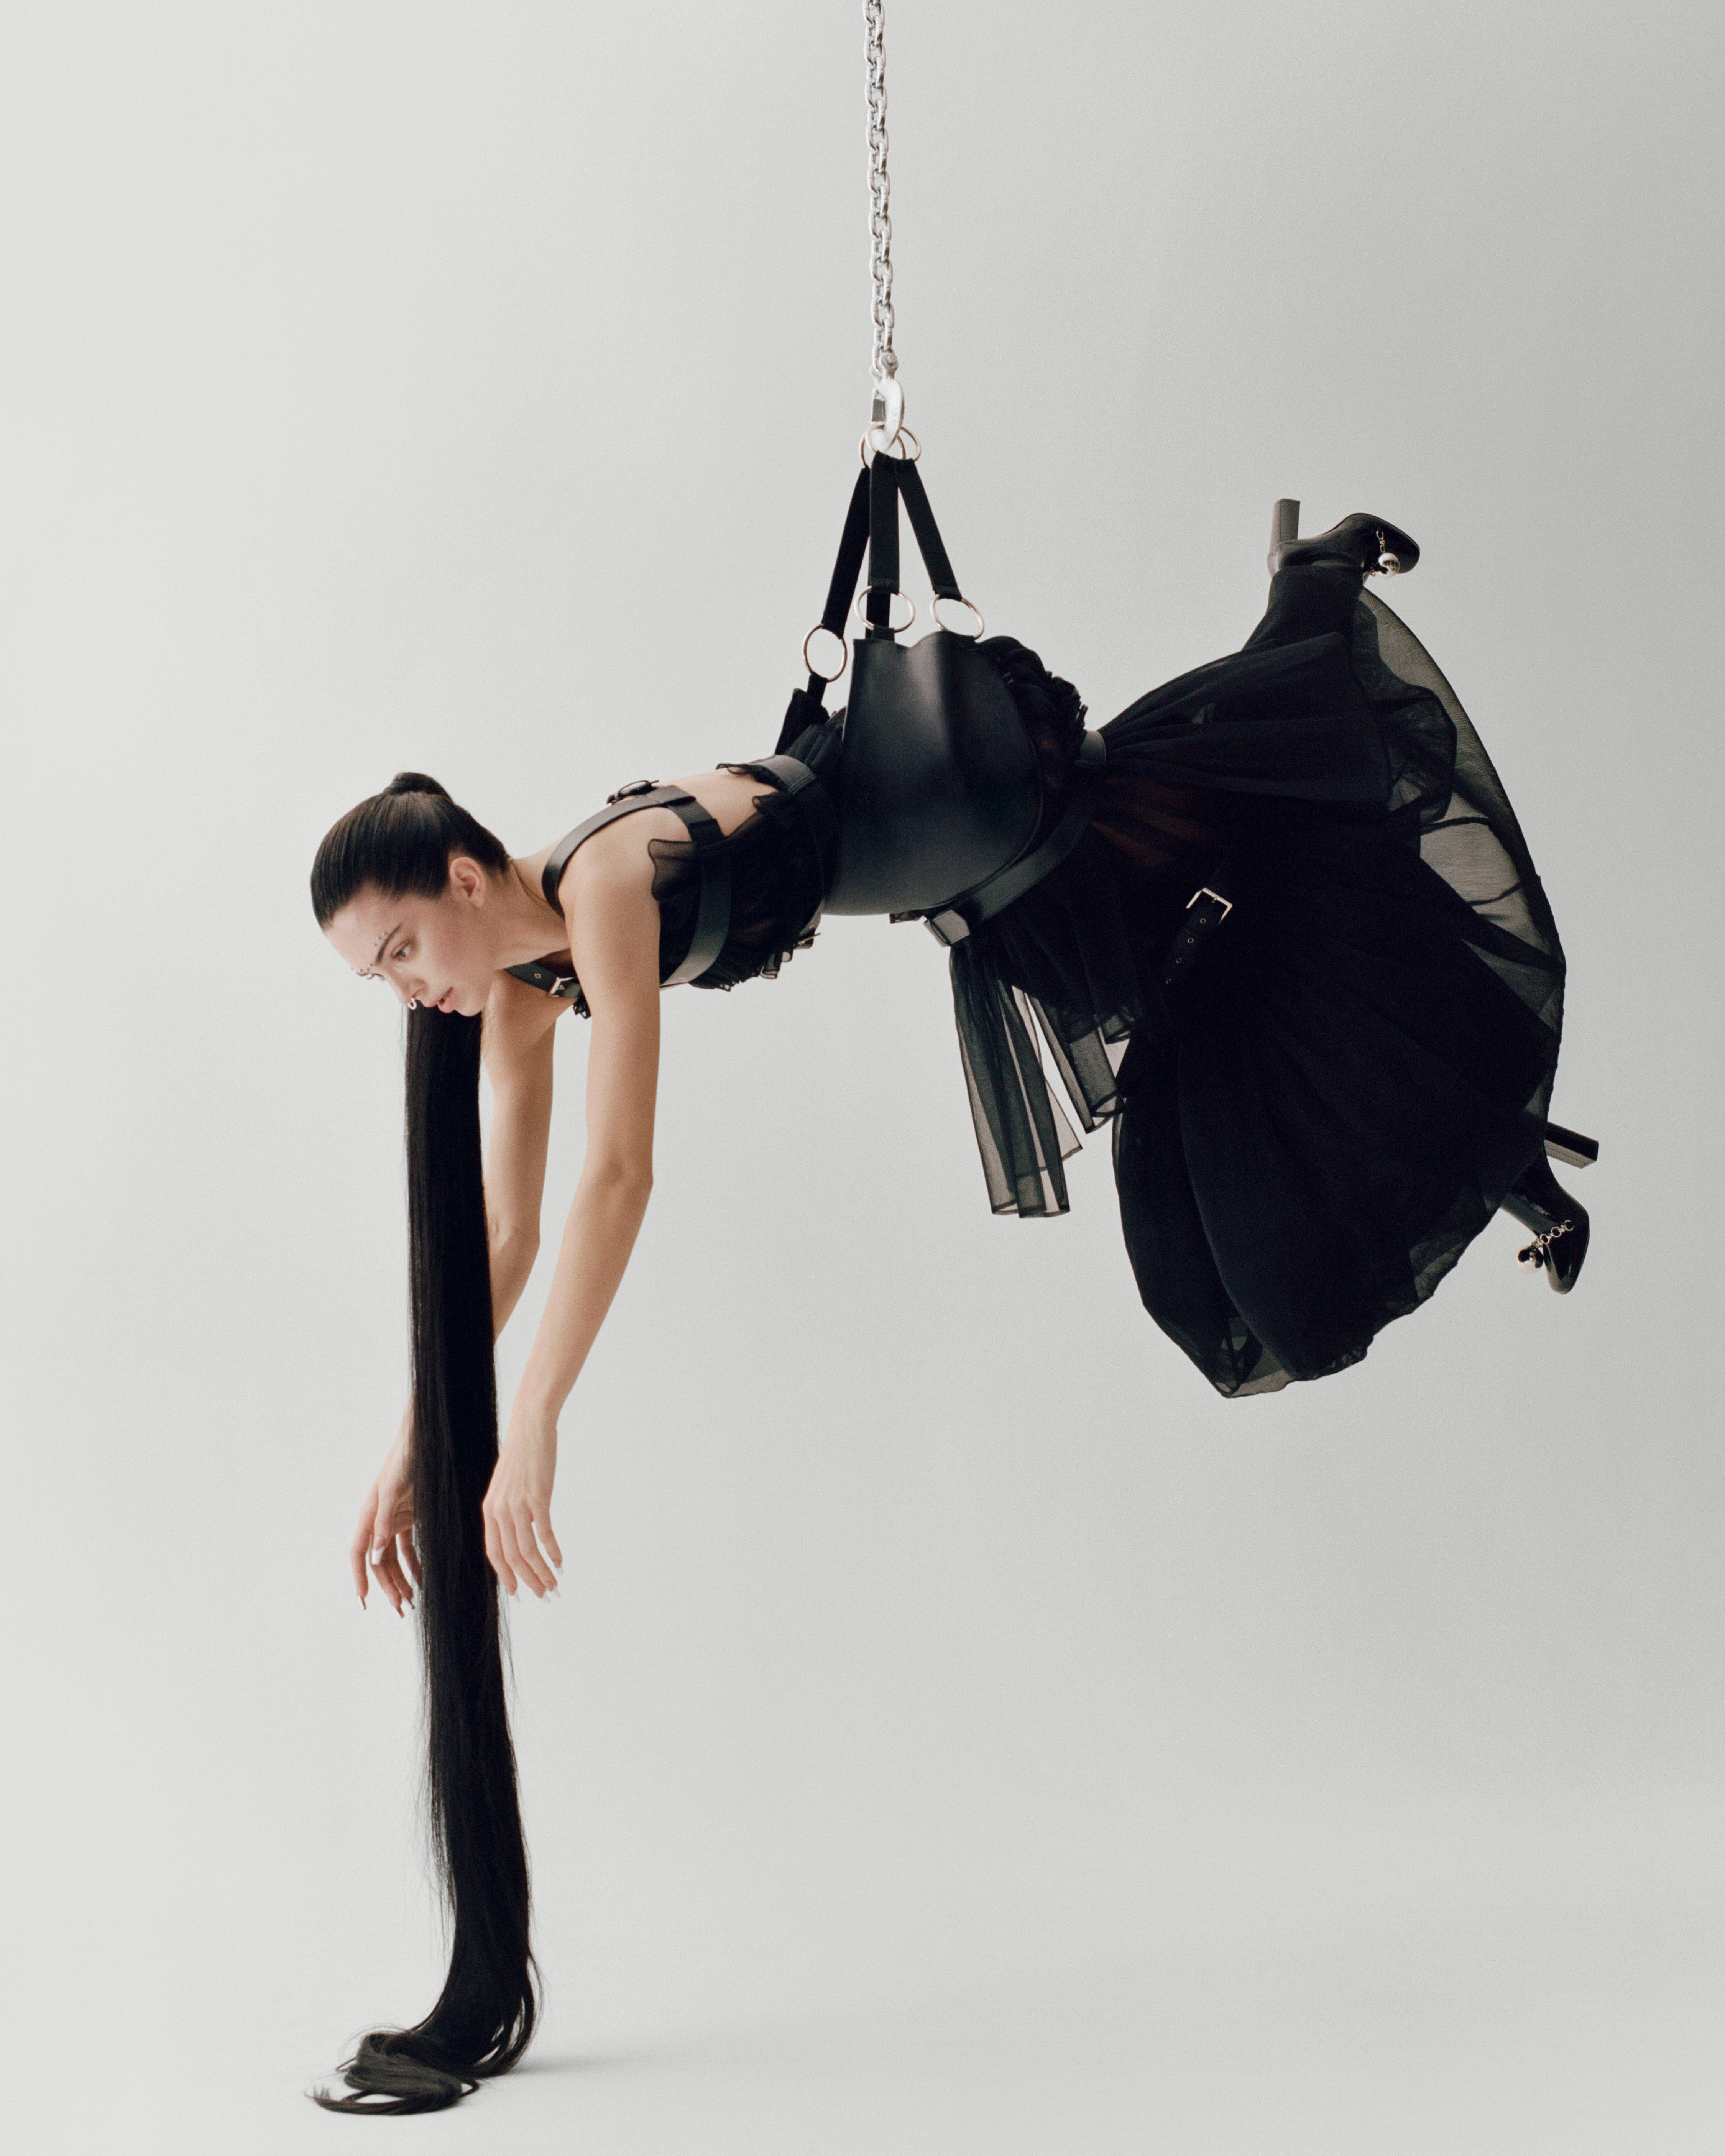 Kendall Jenner By Maurizio Cattelan Photographed by Campbell Addy For Garage Magazine Dress by Noir Kei Ninomiya